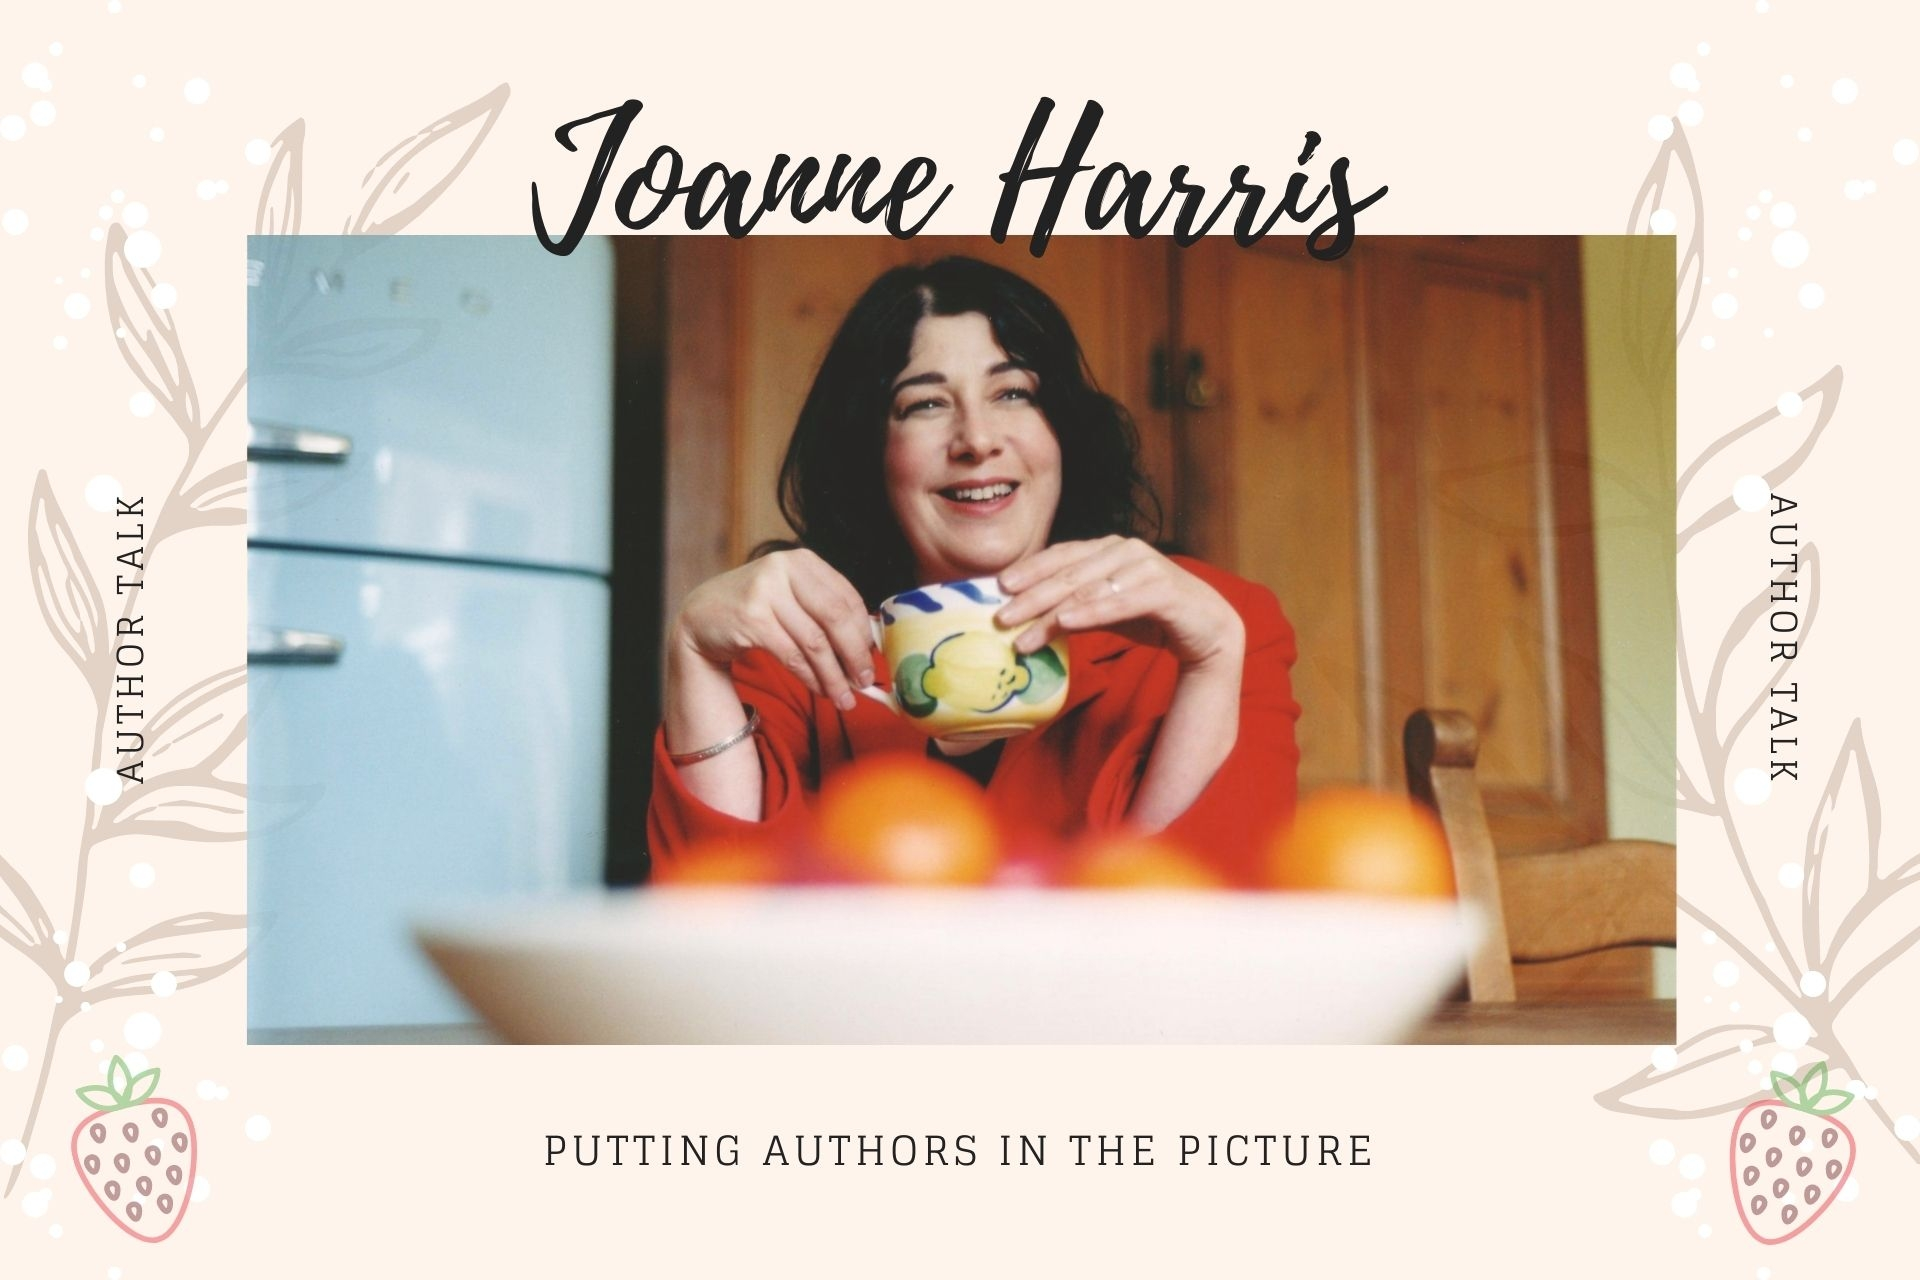 Putting Authors in the Picture #26: Joanne Harris - December 2020 Guest Editor